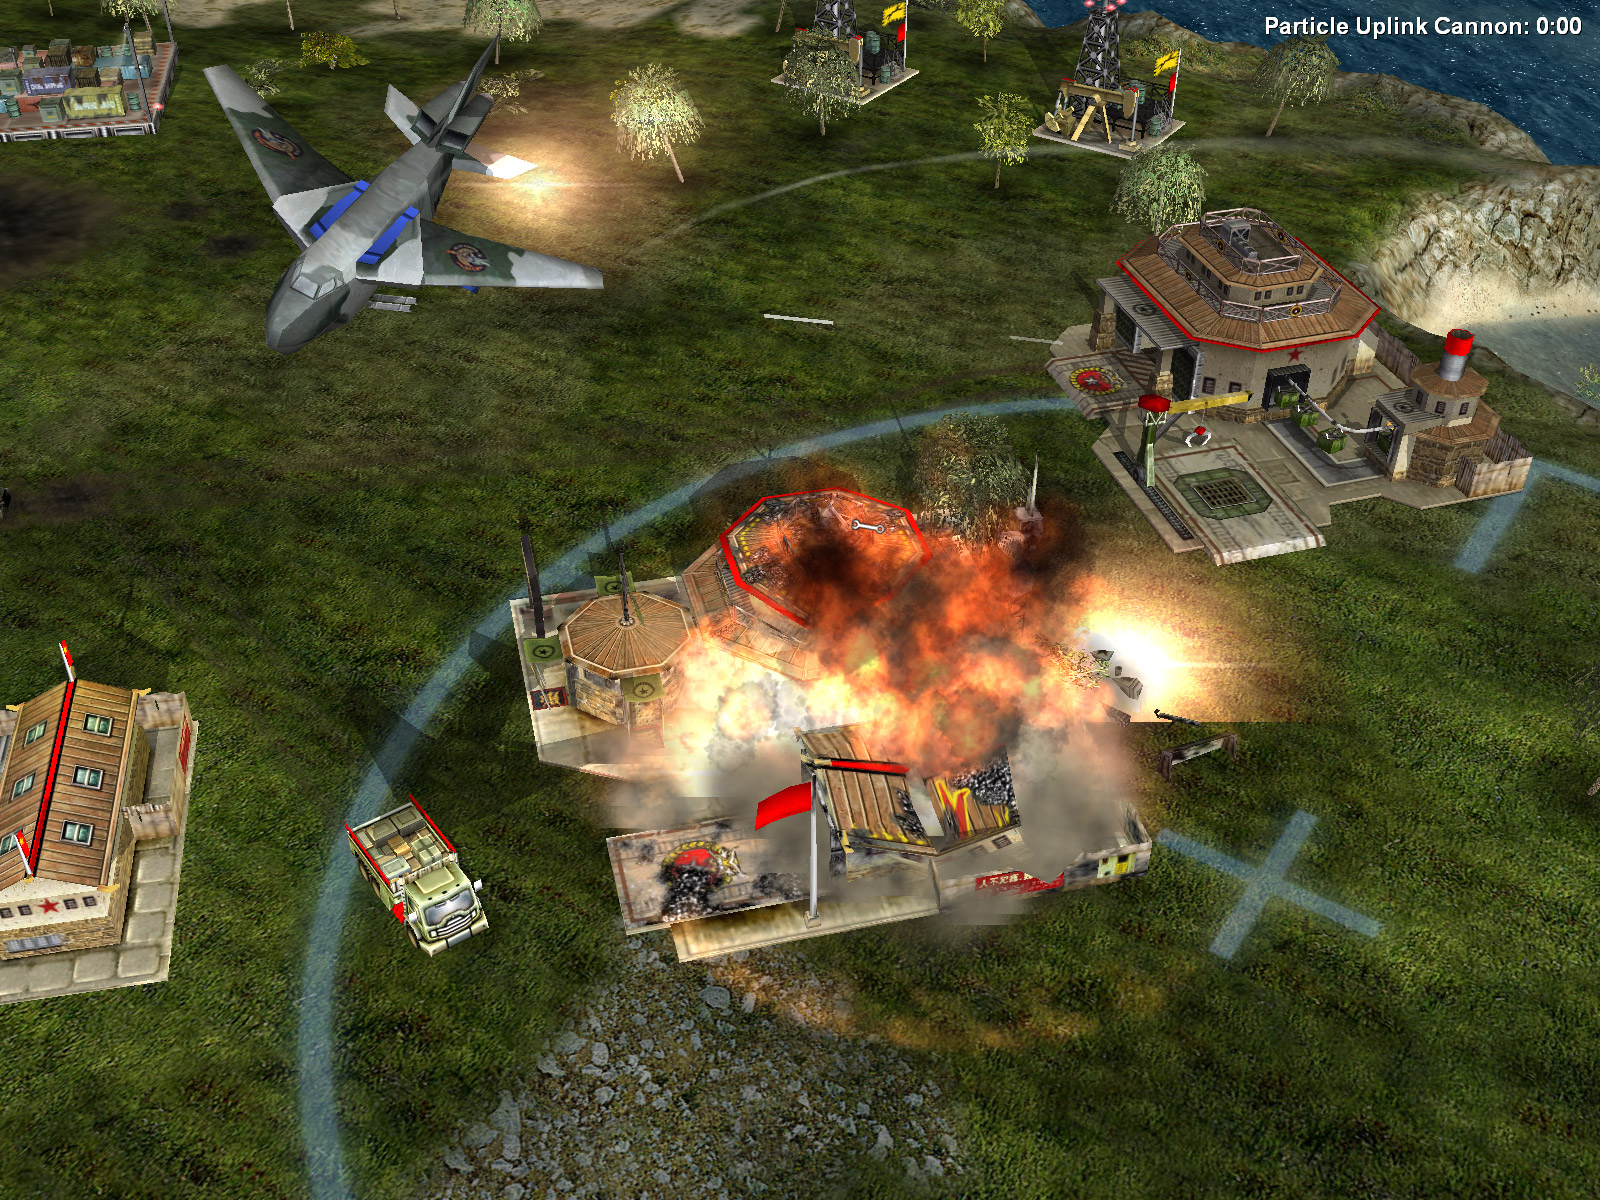 Command & Conquer Gold (Full Game - GDI ISO) - Free Download